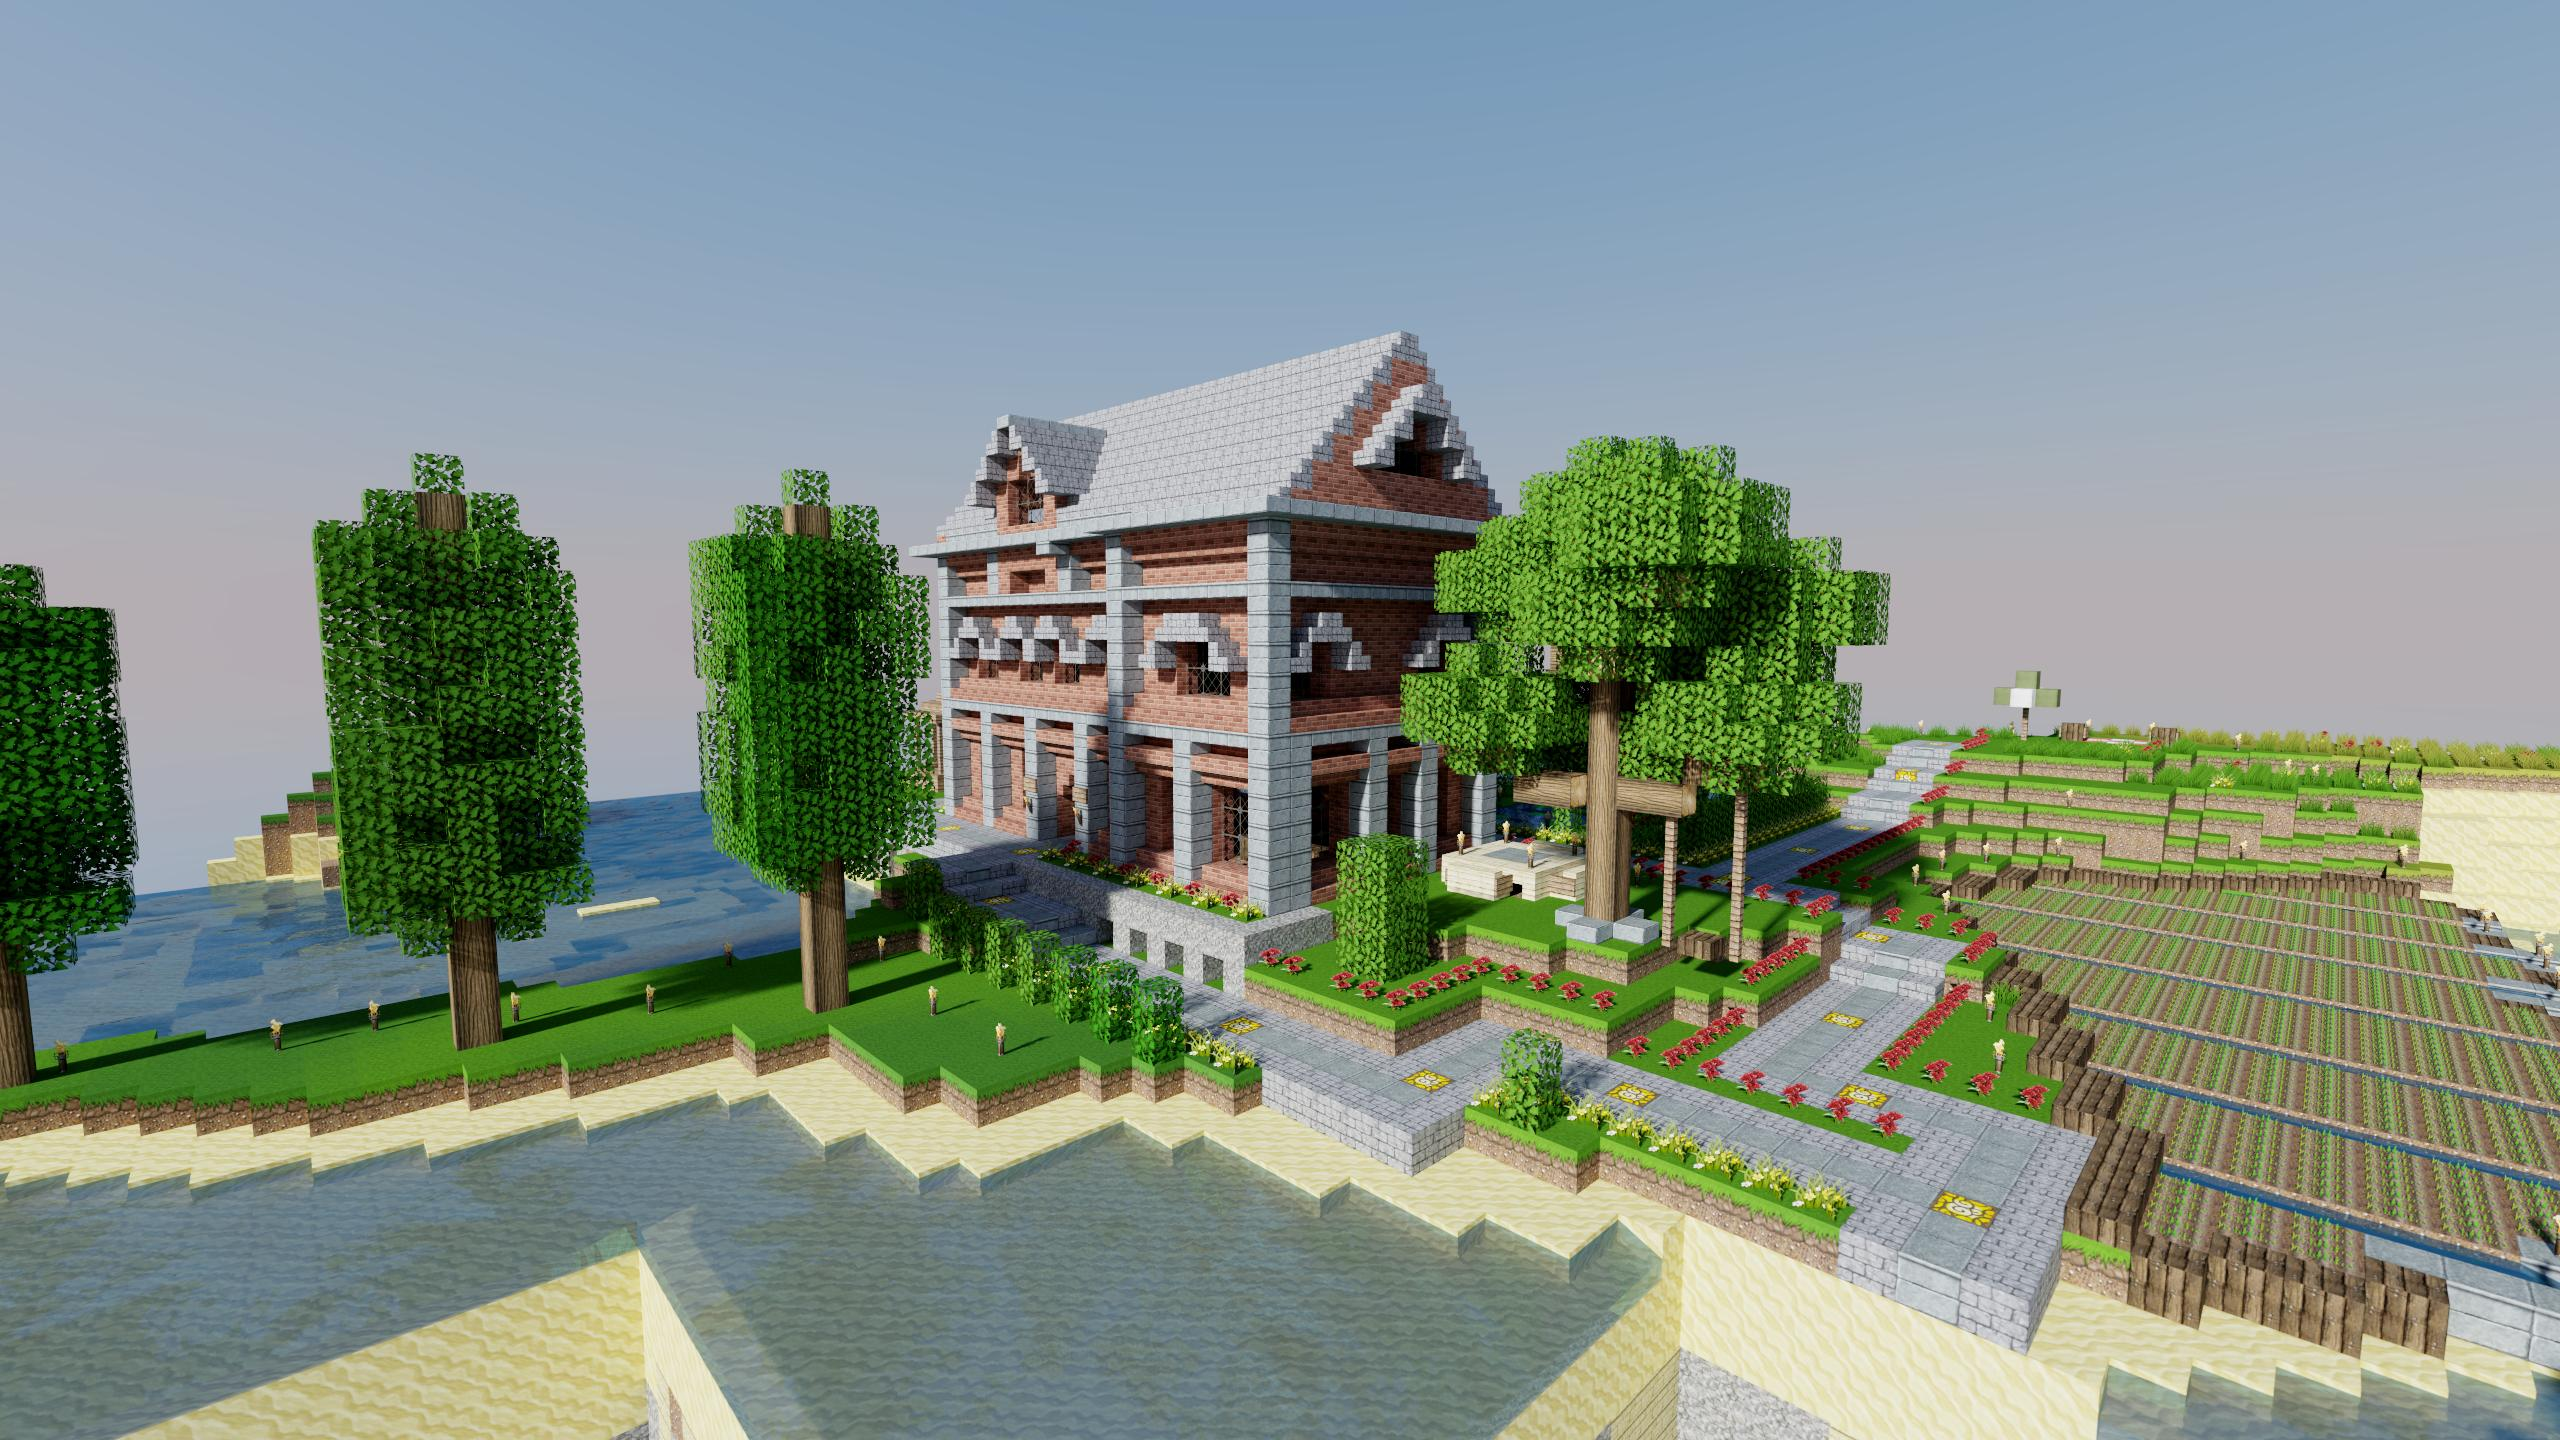 Wallpaper Maison en brique - The-Minecraft.fr